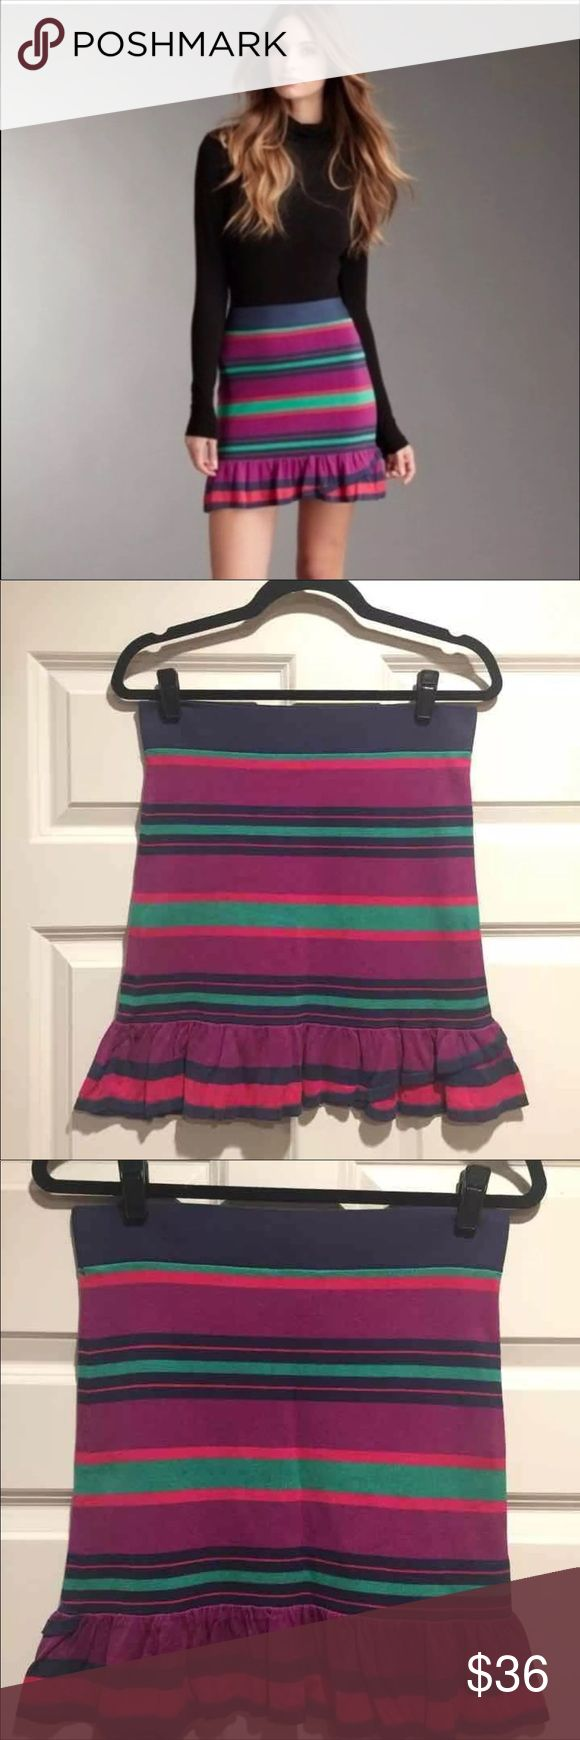 "BCBG Catarina Mini Skirt Size Medium M BCBG MAXAZRIA Catarina Ruffled Skirt Retail $138.00 Light magenta multi stripes (magenta, purple, blue green). Stretchy knit silk-cotton blend fabric. Straight; Ruffled asymmetric bottom hem. Waist is virtually solid (has little stretch). Mini. 50% silk, 40% cotton, 8% nylon, 2% spandex. Unlined. Hand wash cold (can be dry cleaned). EUC---one minor faint smudge on green stripe. Please see pics 2-4 WAIST (FLAT MEASUREMENT): 14.5"" HIP (FLAT MEASUREMENT)…"